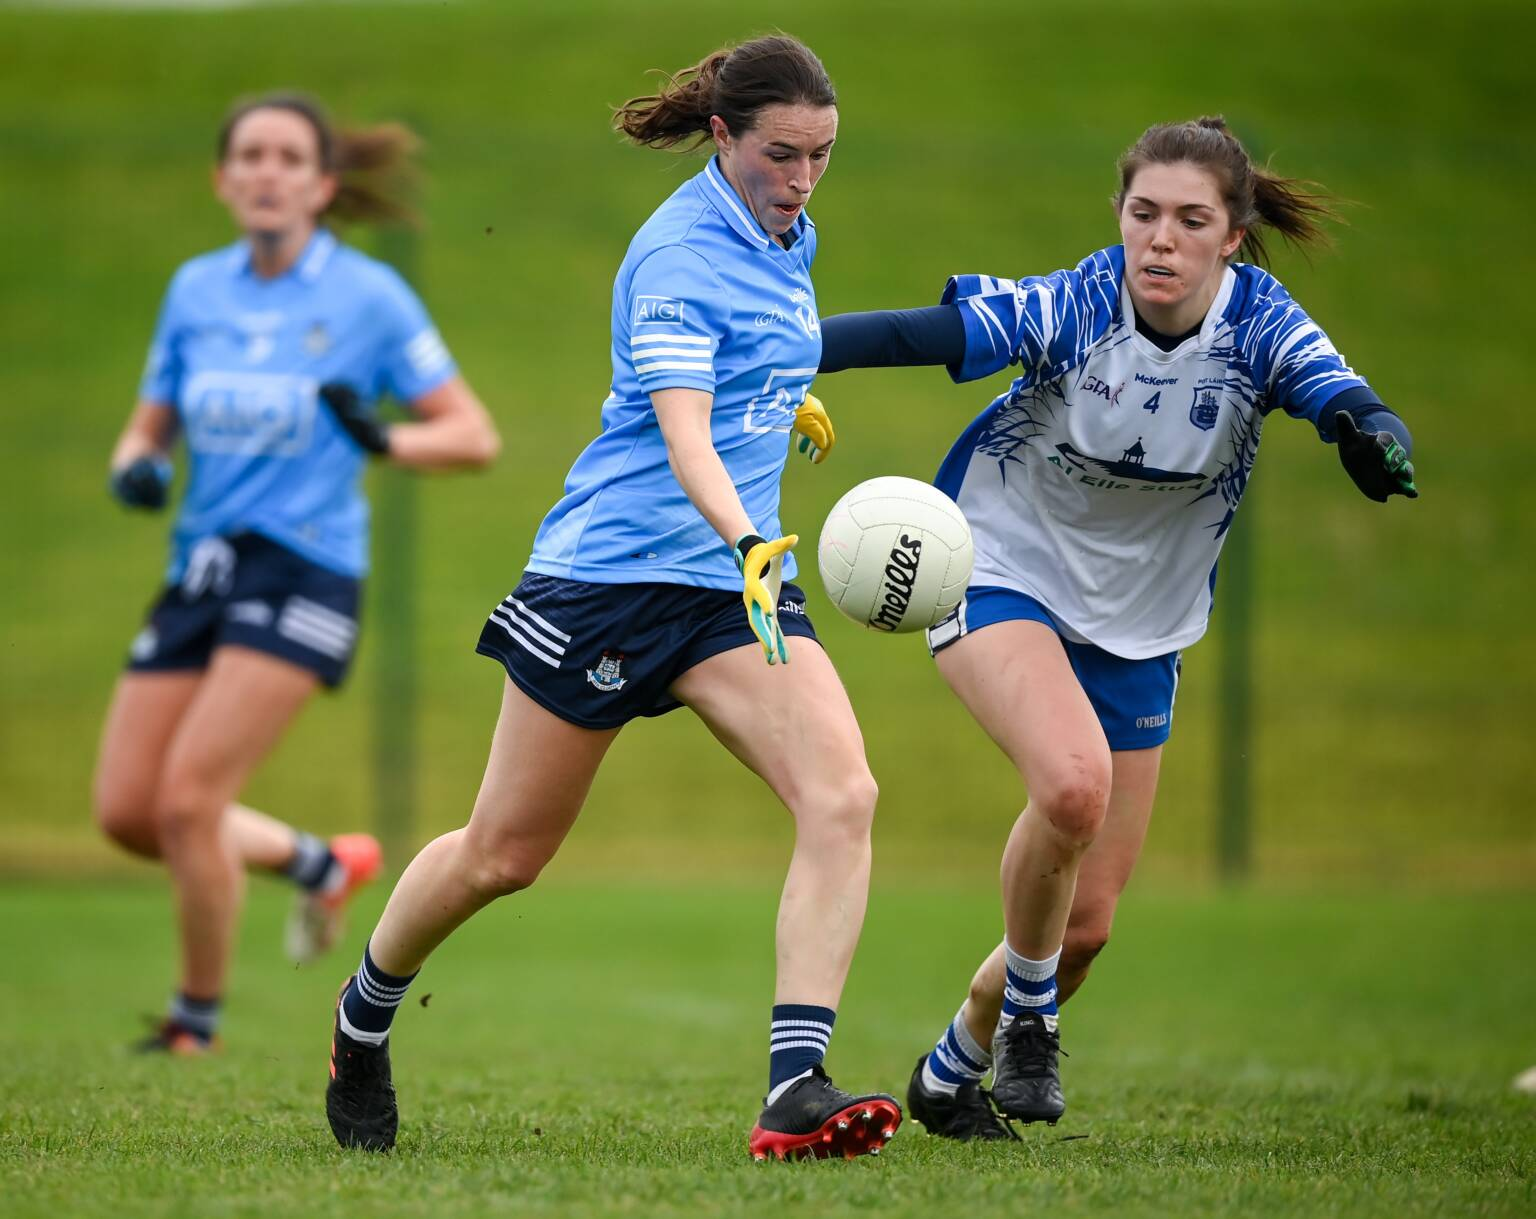 Dublin's Sinead Aherne in action against Waterford, Aherne scored 0-06 as Dublin advanced to the TG4 All Ireland Championship semi-final